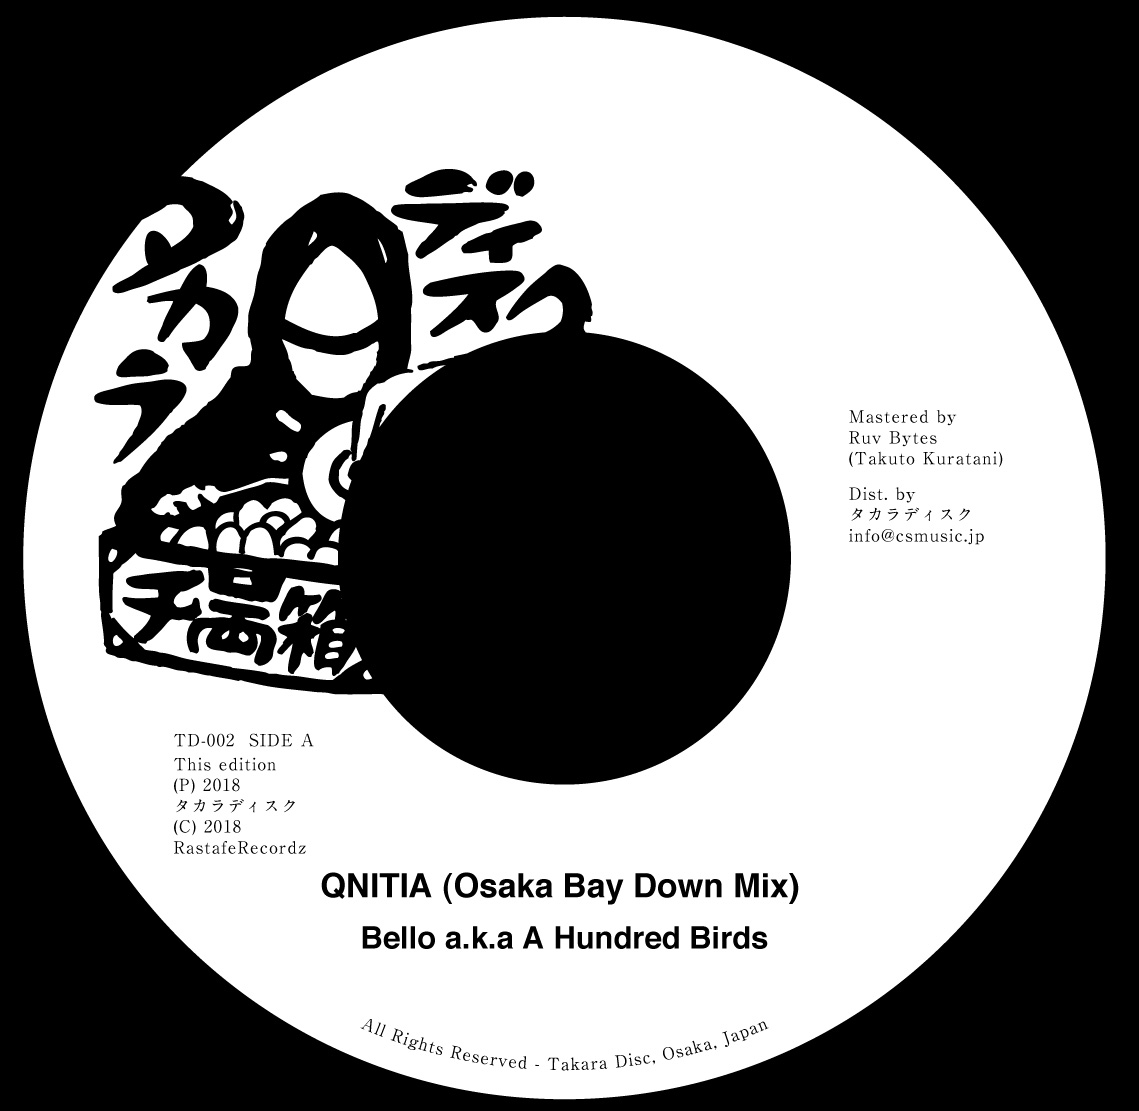 QNITIA (Osaka Bay Down Mix) Remixed by Bello